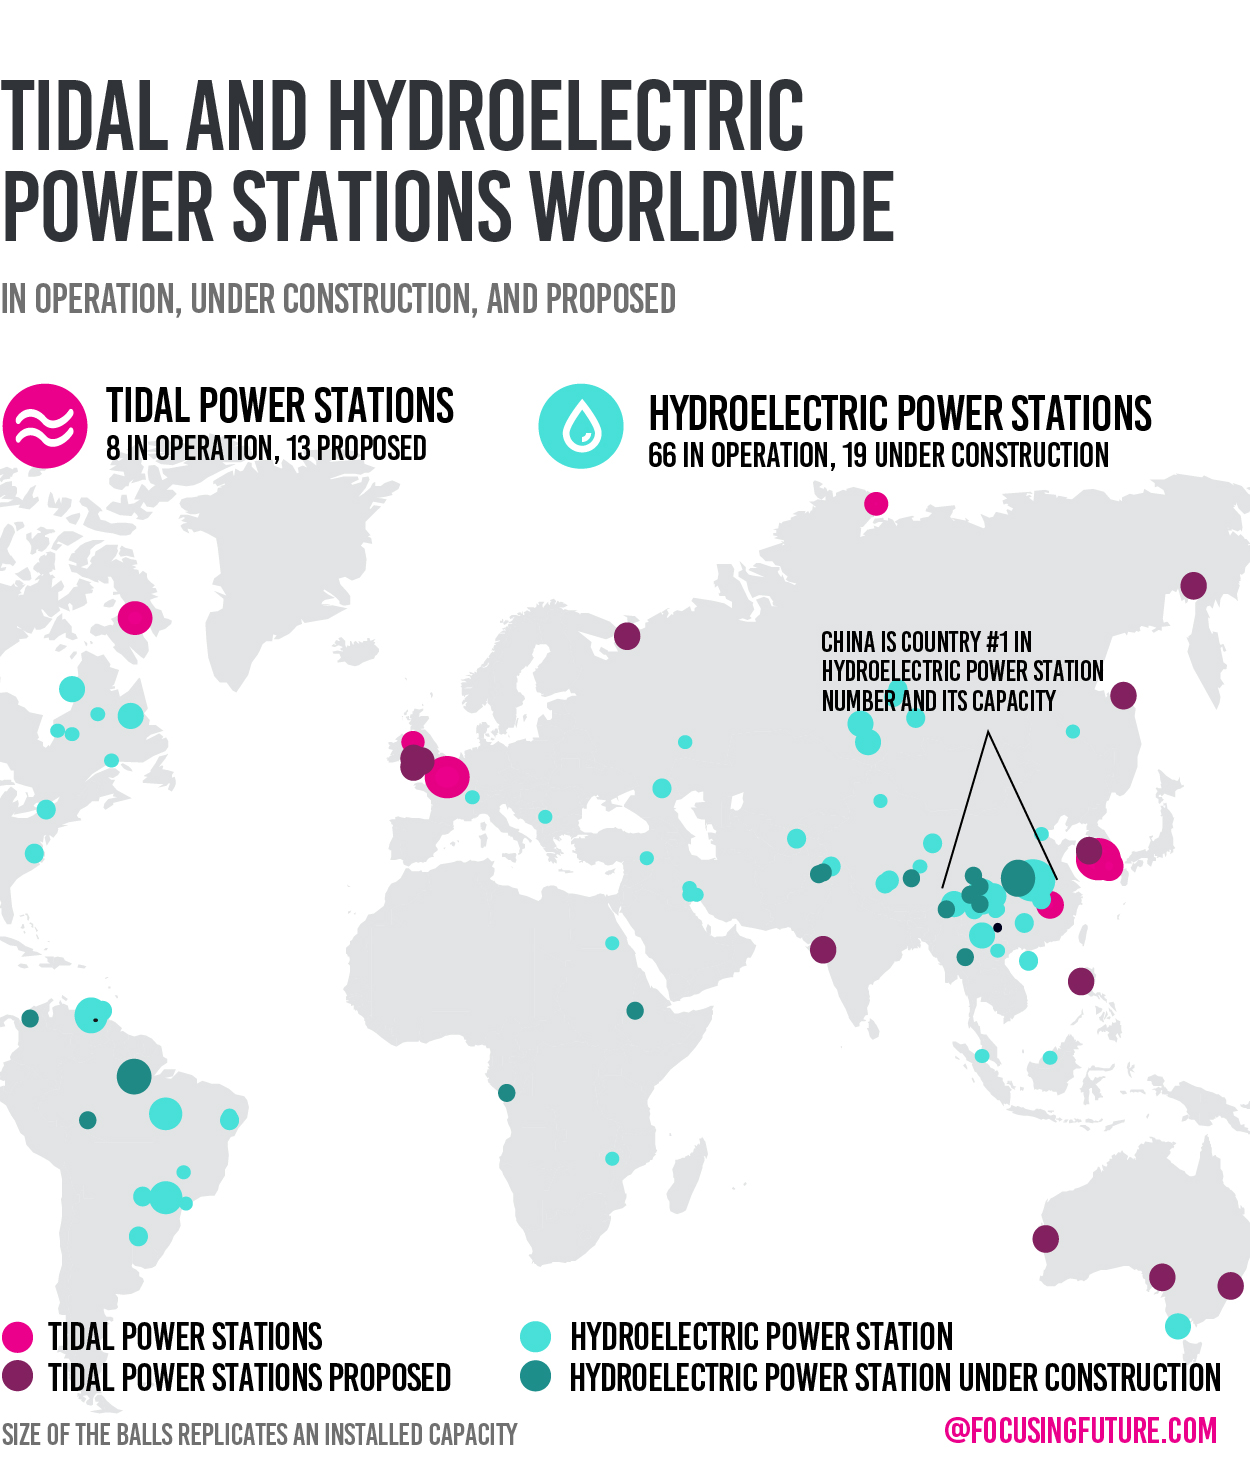 Tidal and hydroelectric power stations worldwide